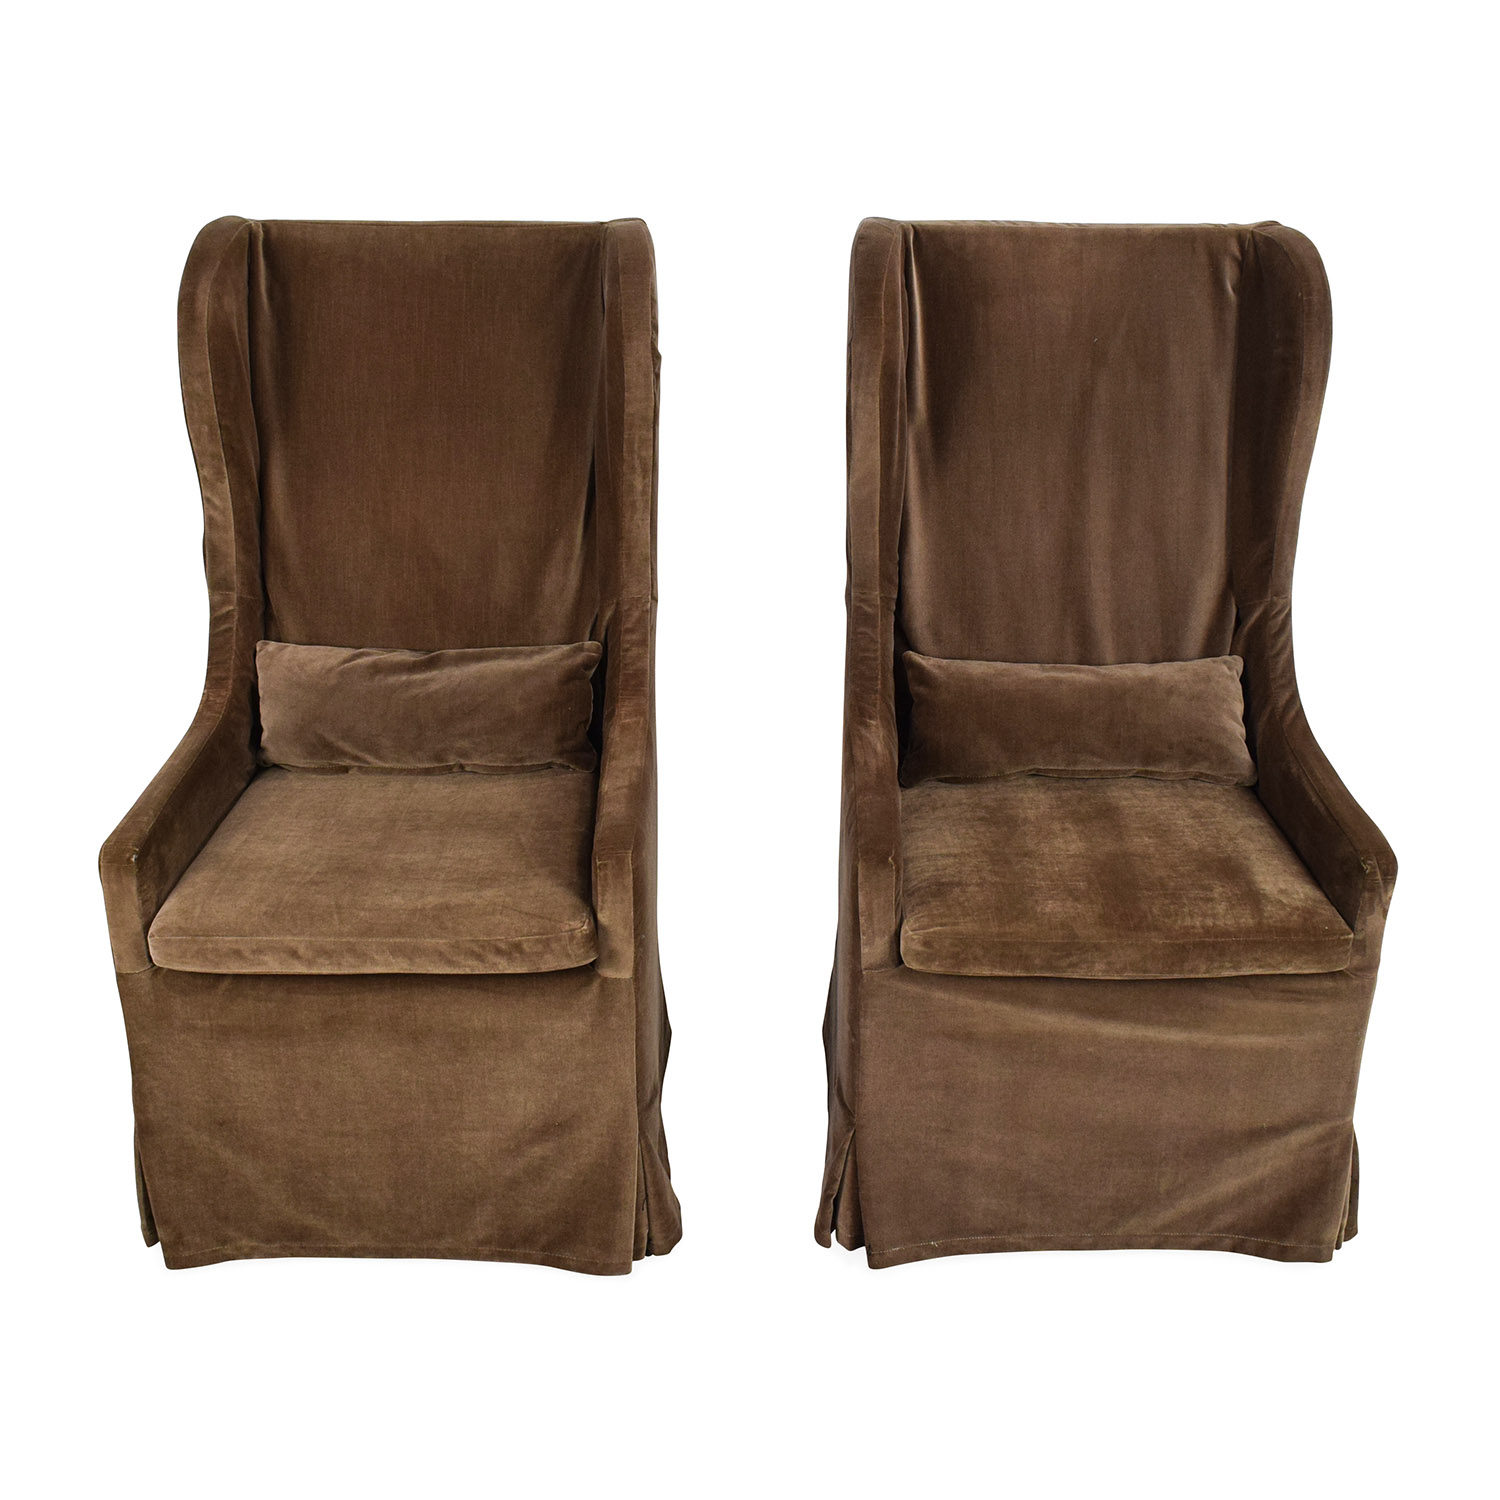 buy Restoration Hardware Belgian Wingback Chair Pair Restoration Hardware Chairs